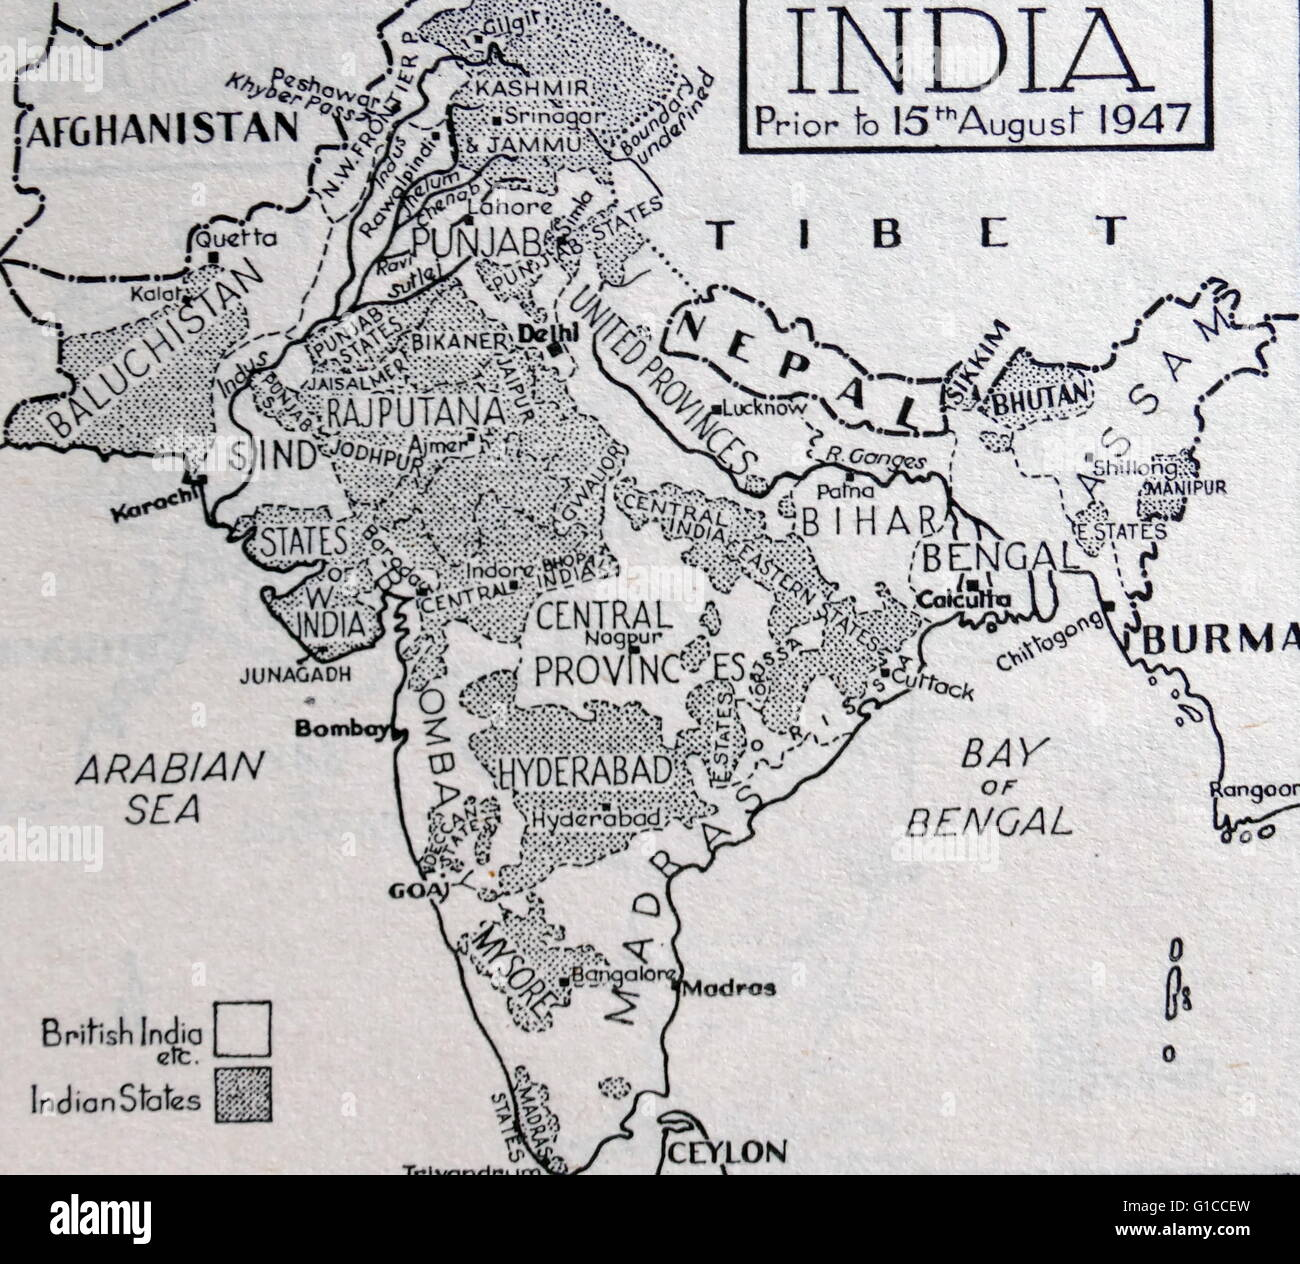 Map of India before the Partition of the British Indian Empire